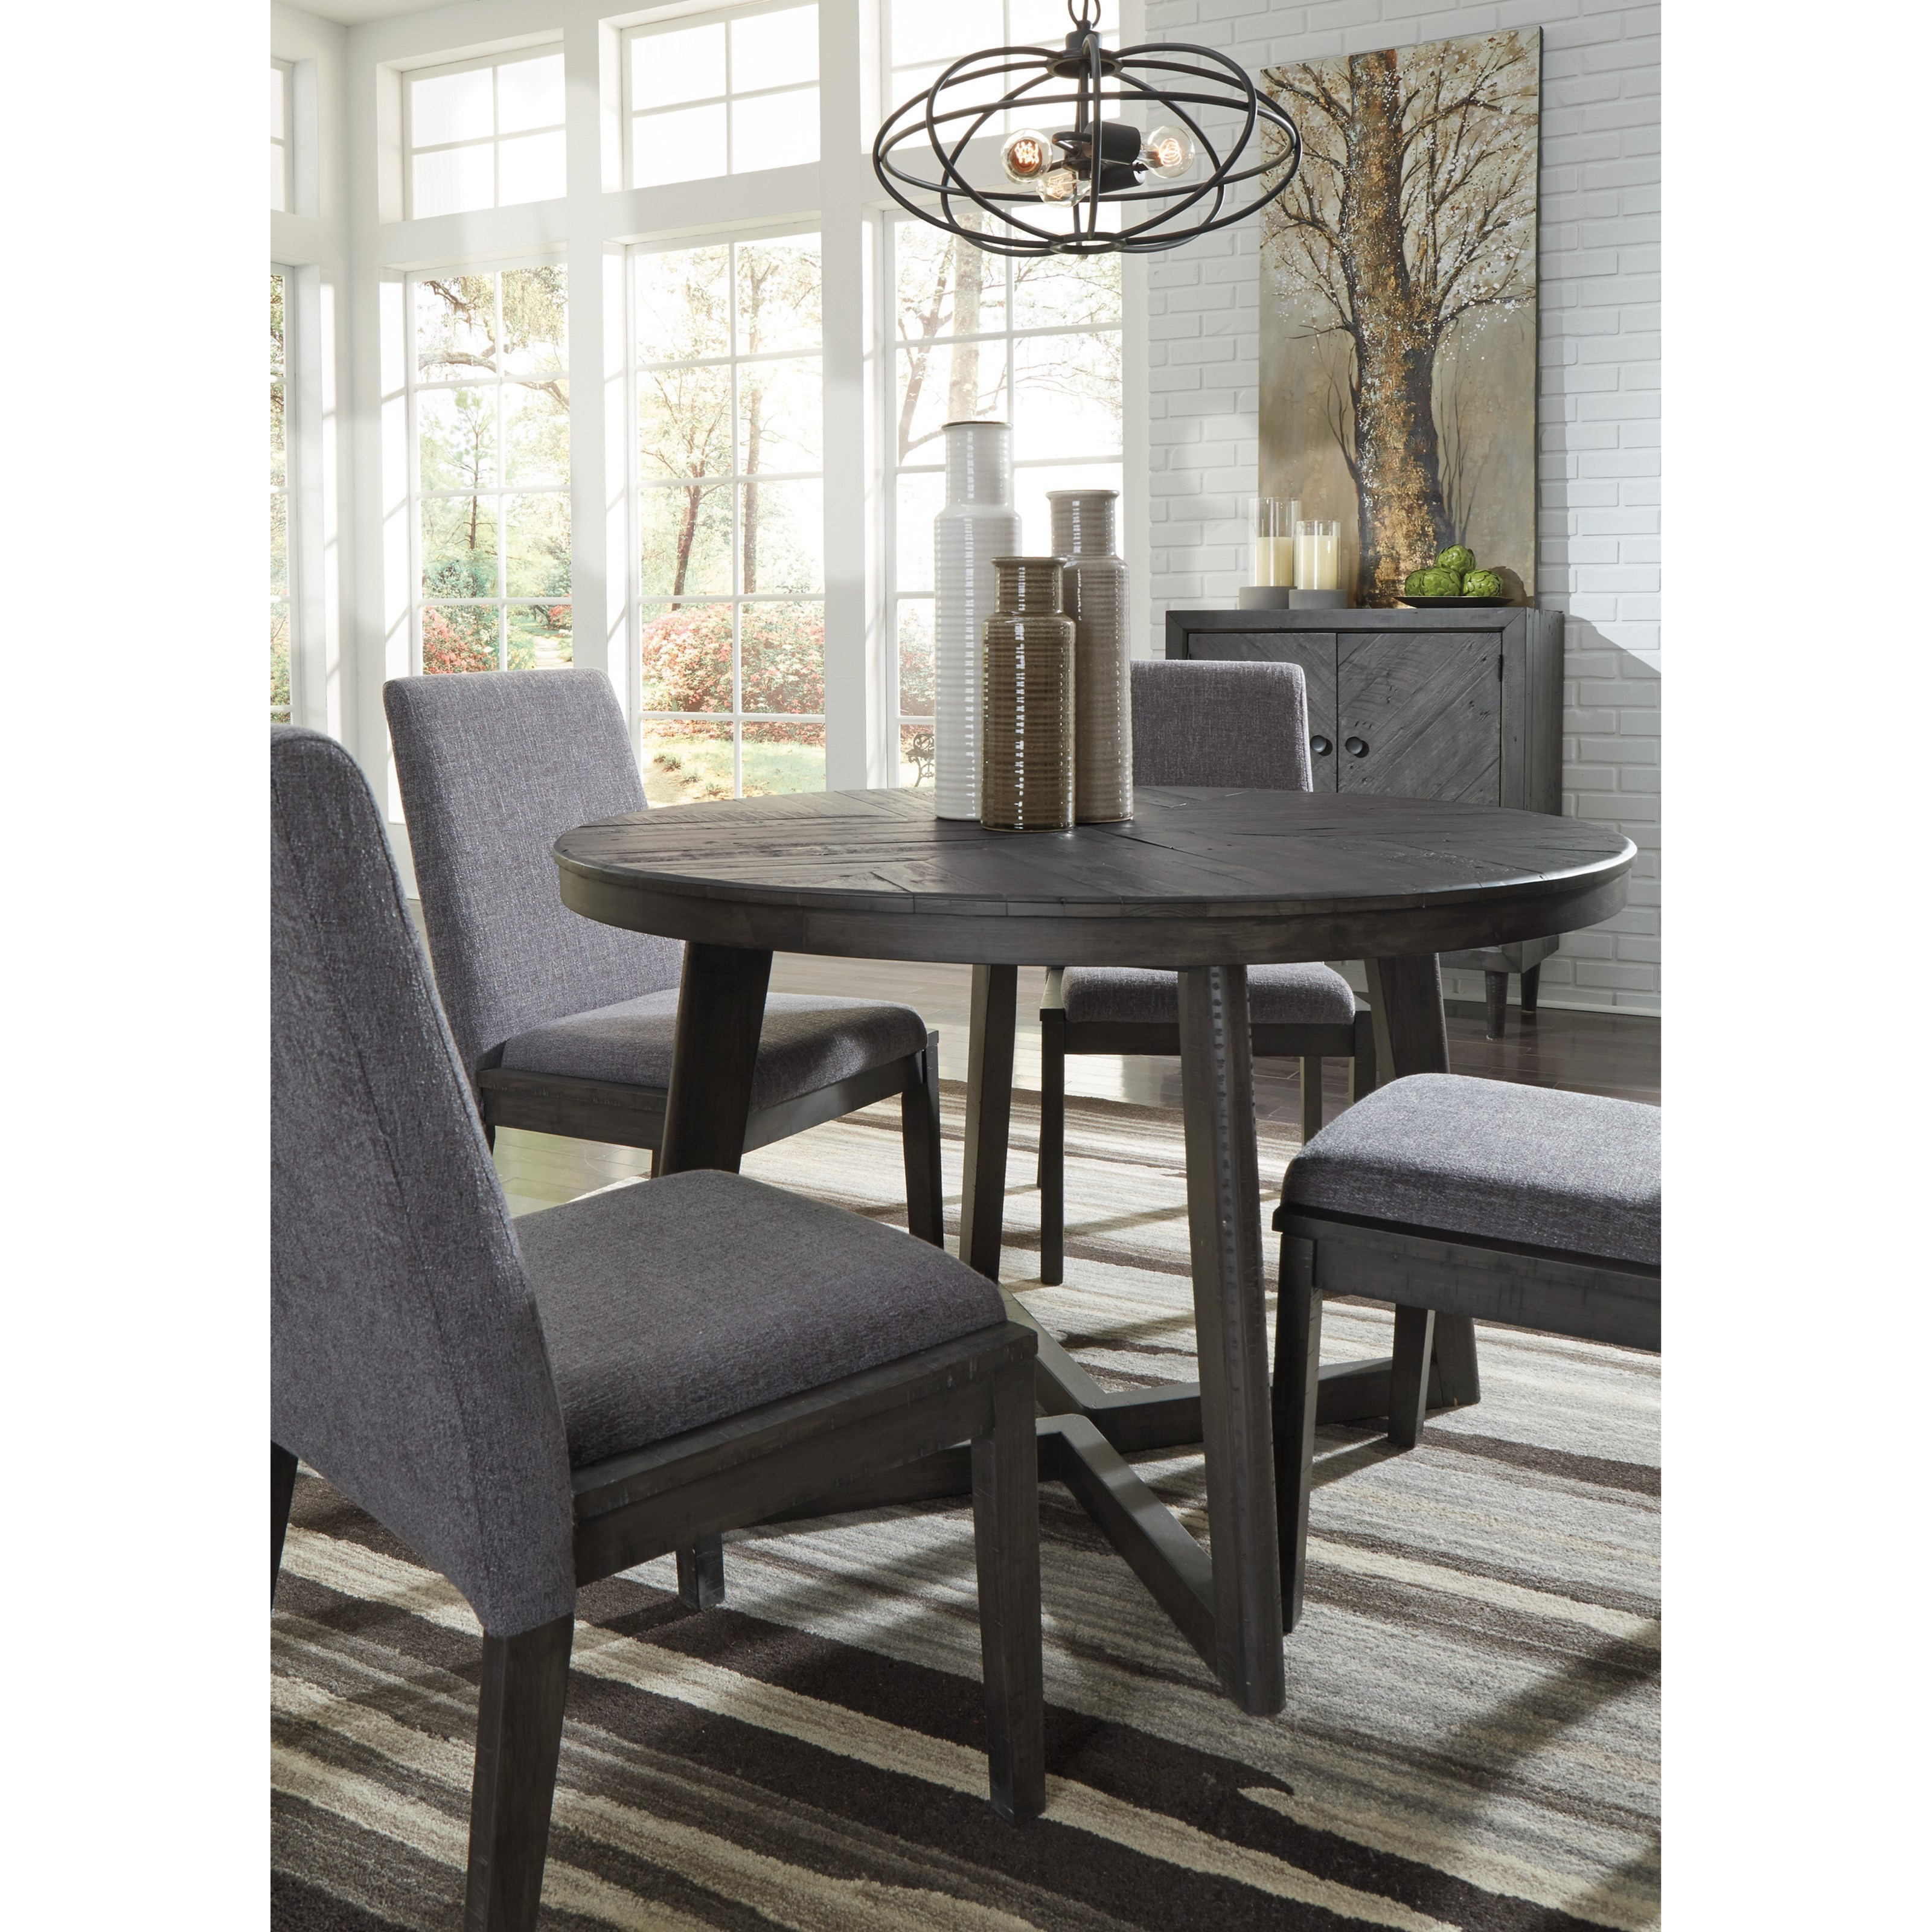 Ashley S Nest Decorating A Dining Room: Signature Design By Ashley Besteneer D568-50 Contemporary